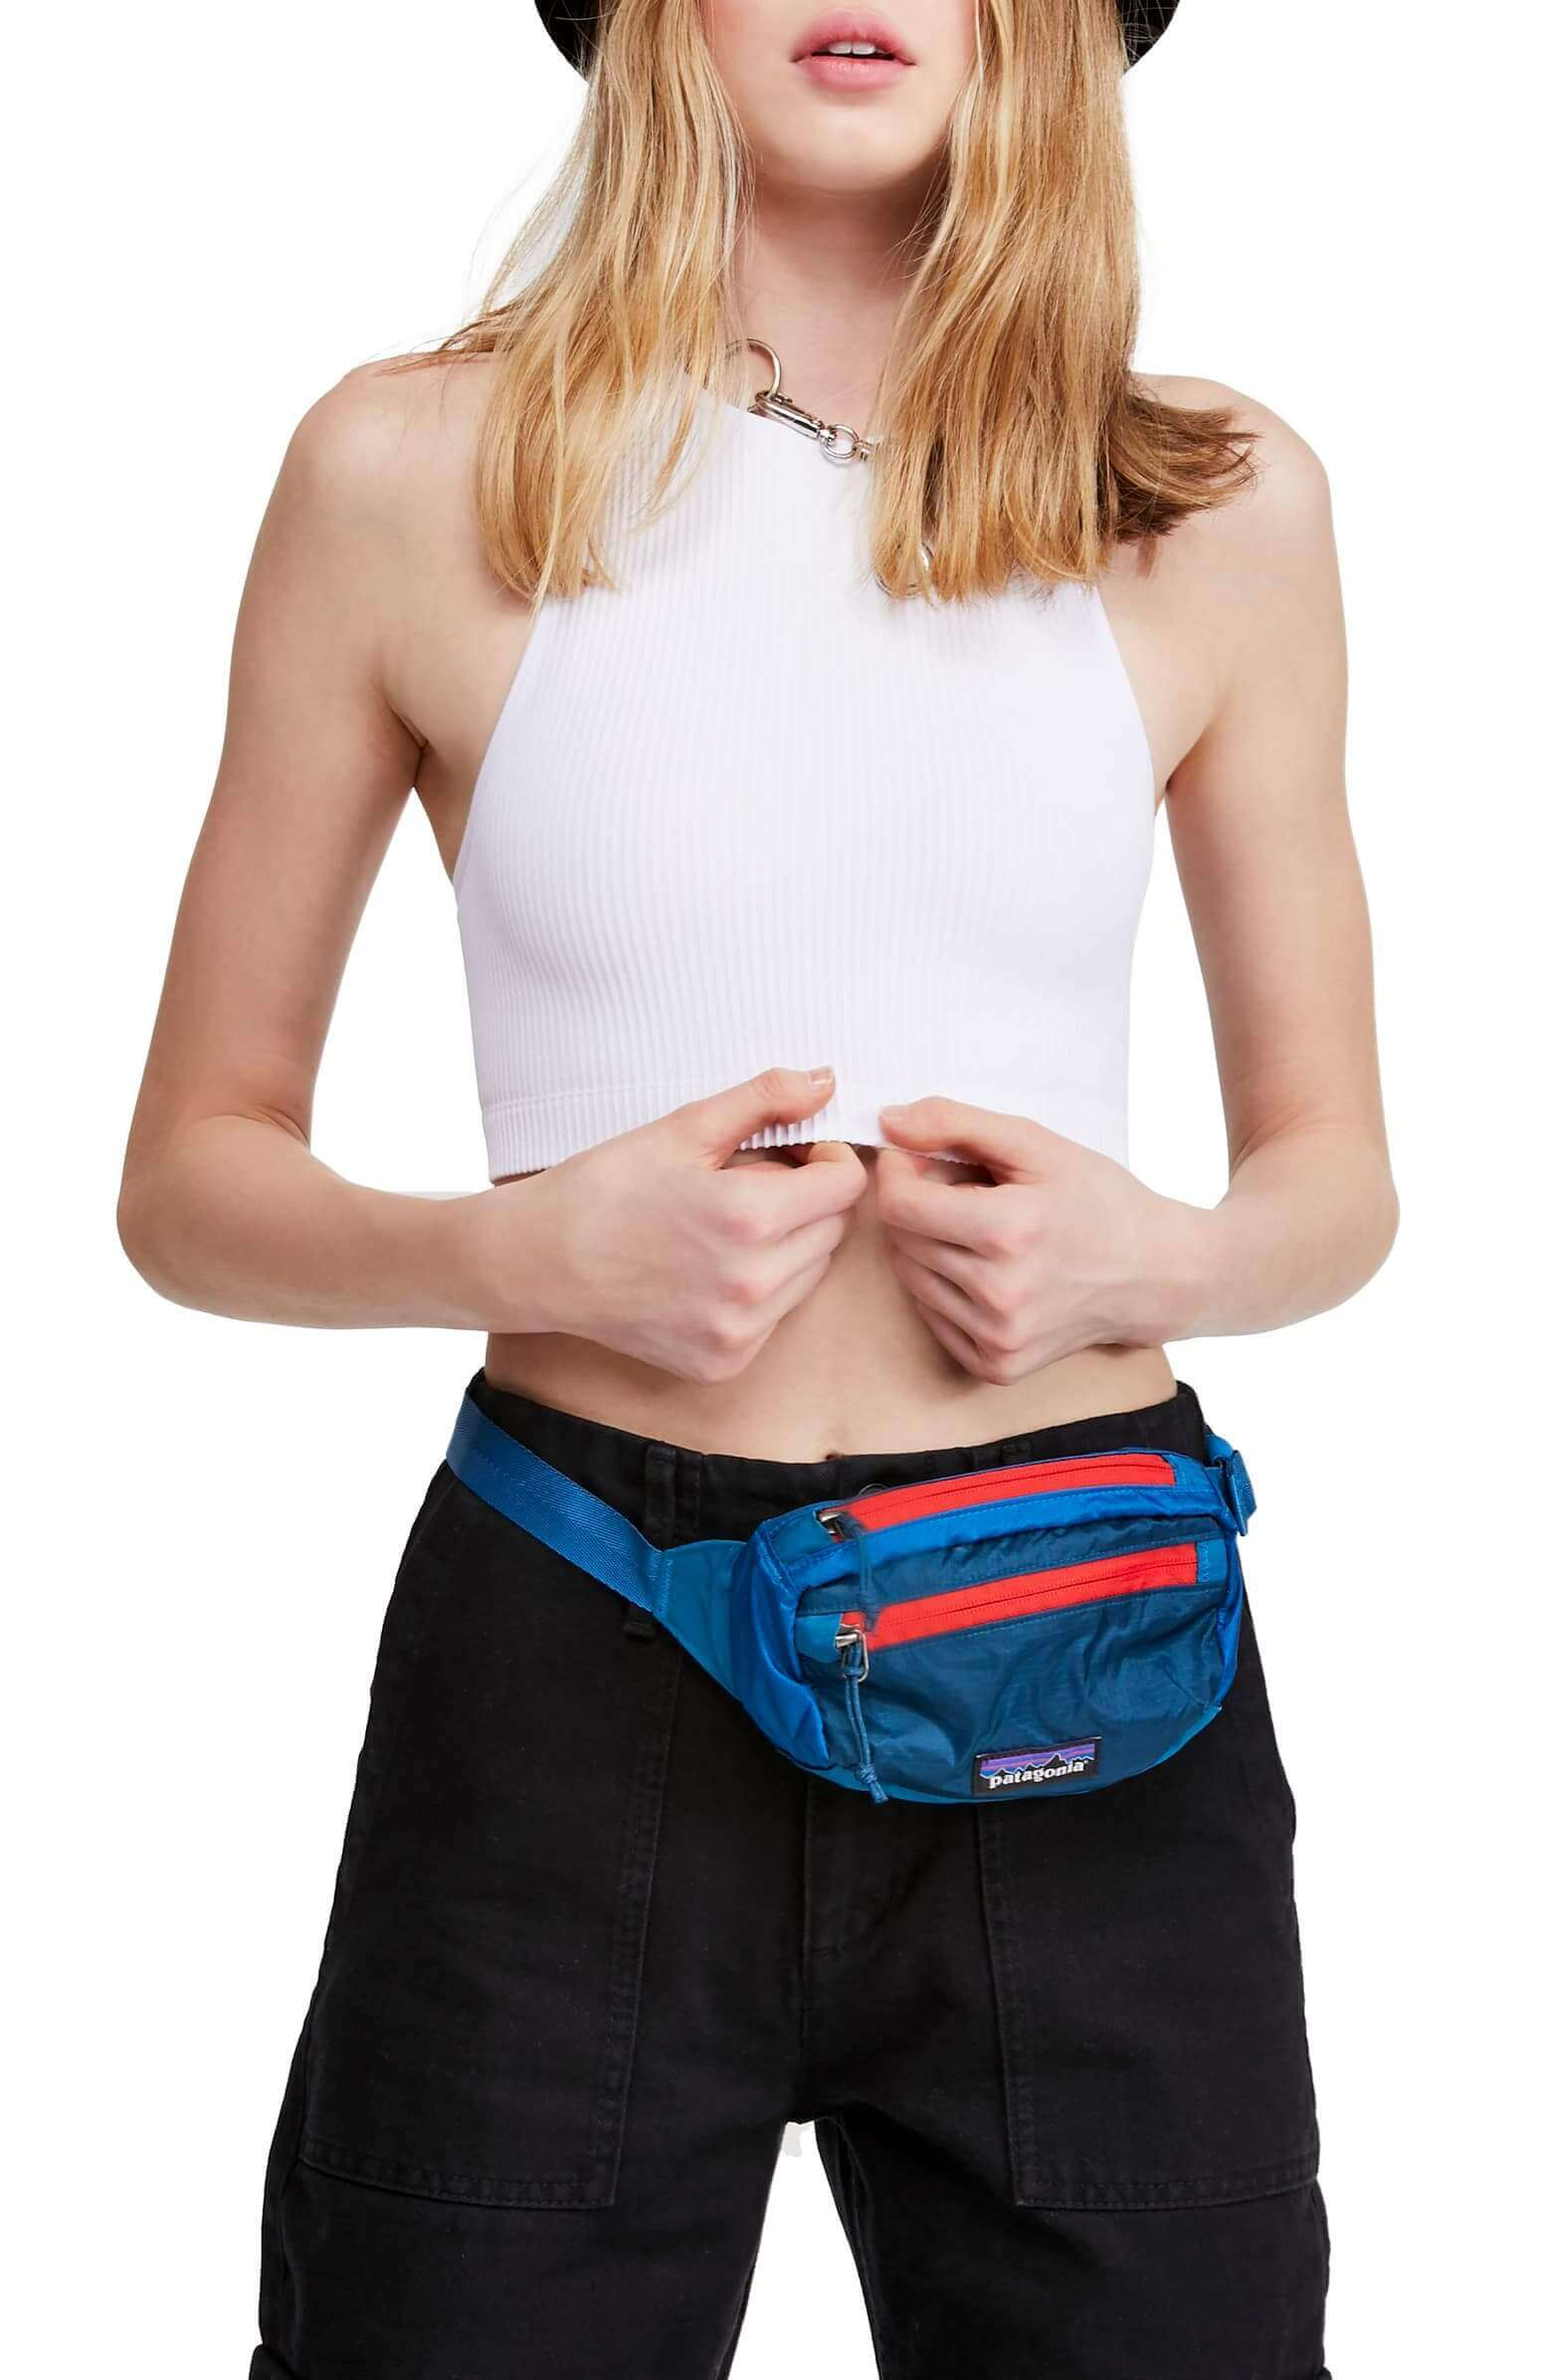 Nordstrom - Urban Outfitters - Racerback Crop Tank